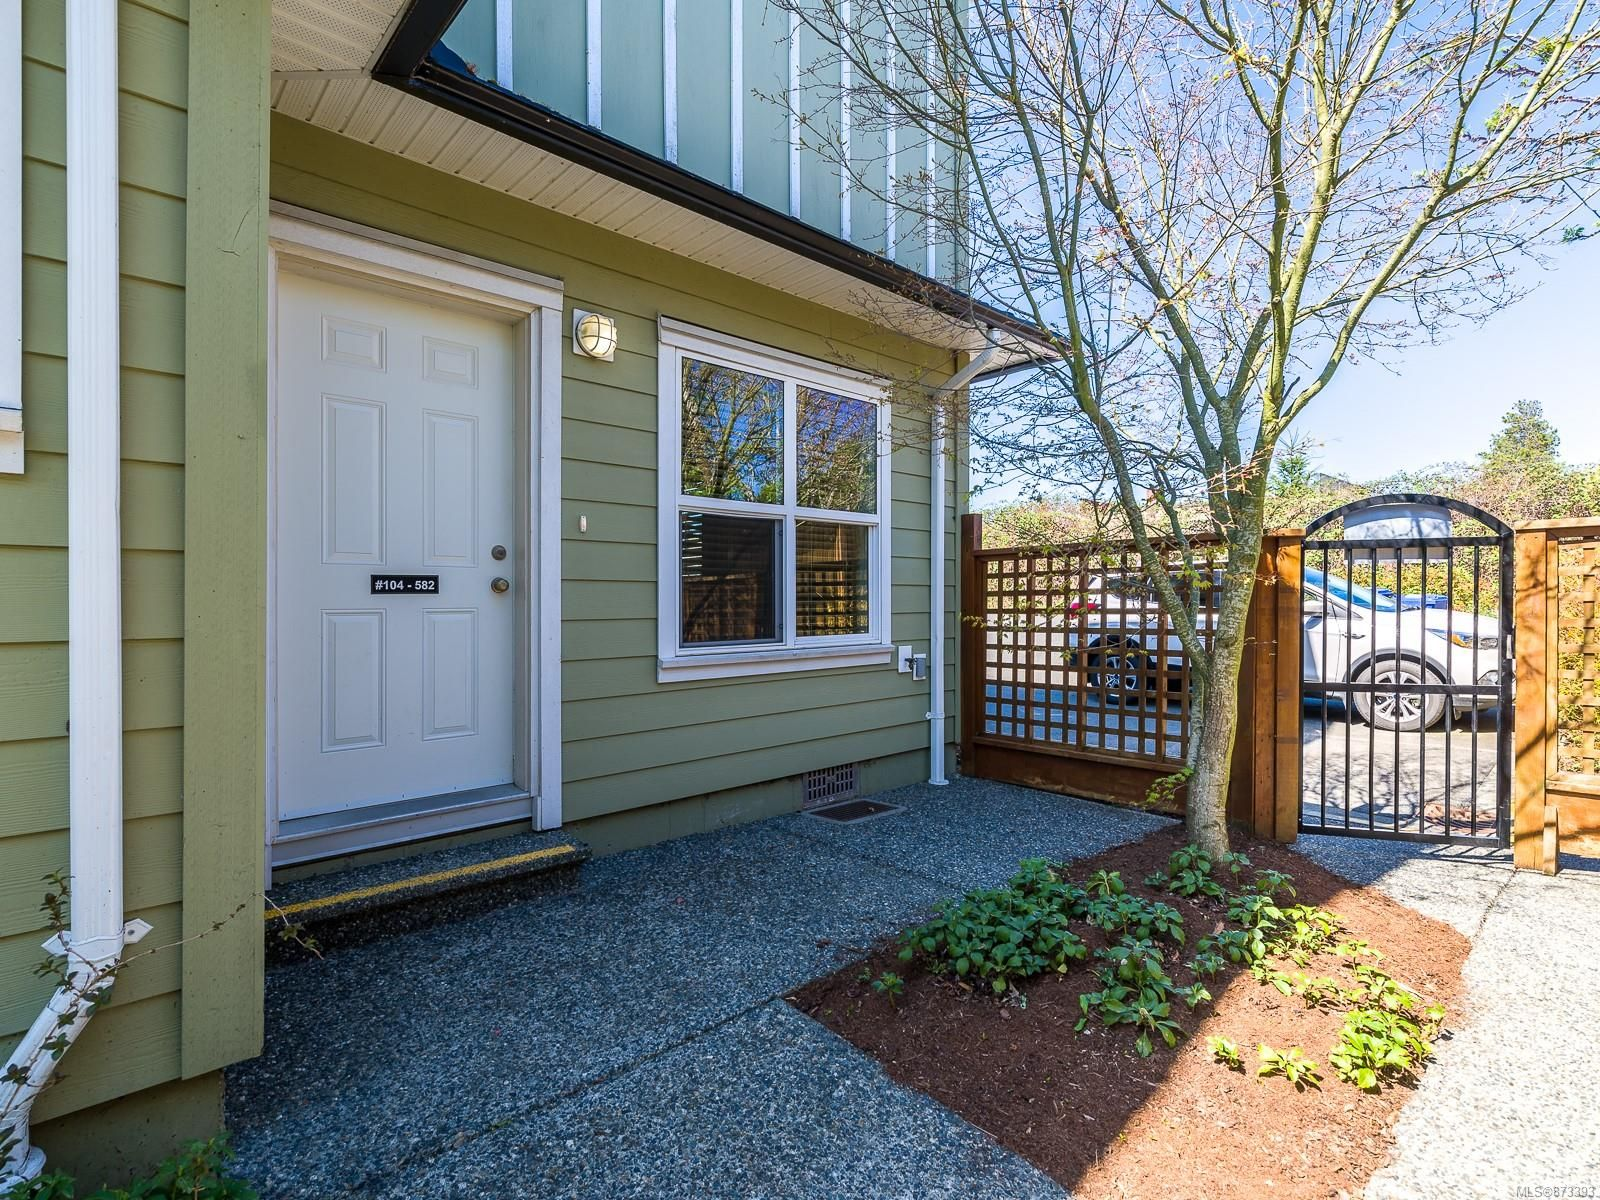 Main Photo: 582-584 Rosehill St in : Na Central Nanaimo Other for sale (Nanaimo)  : MLS®# 873393